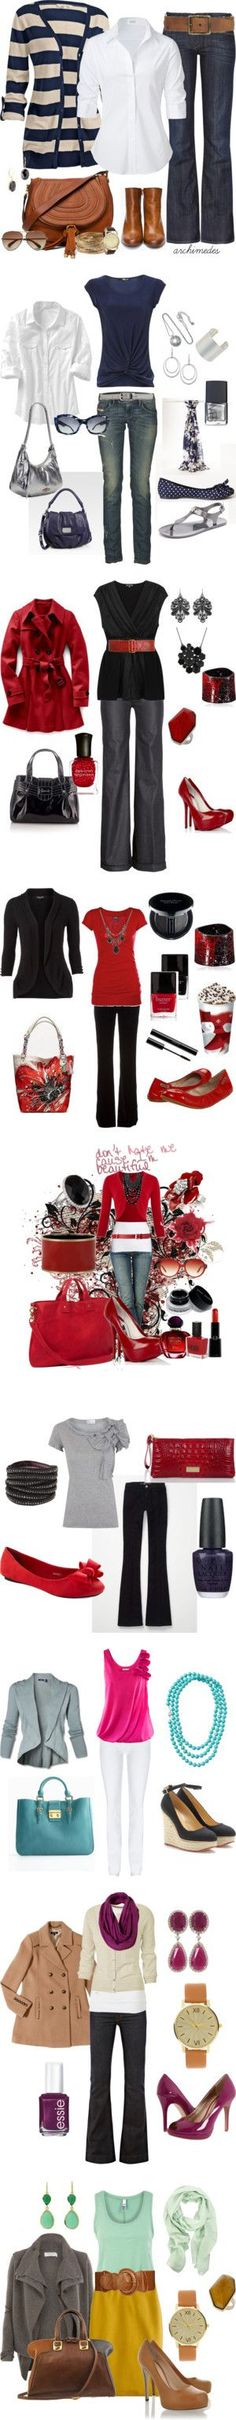 """Workin' 9-5"" by riddlechick on Polyvore 